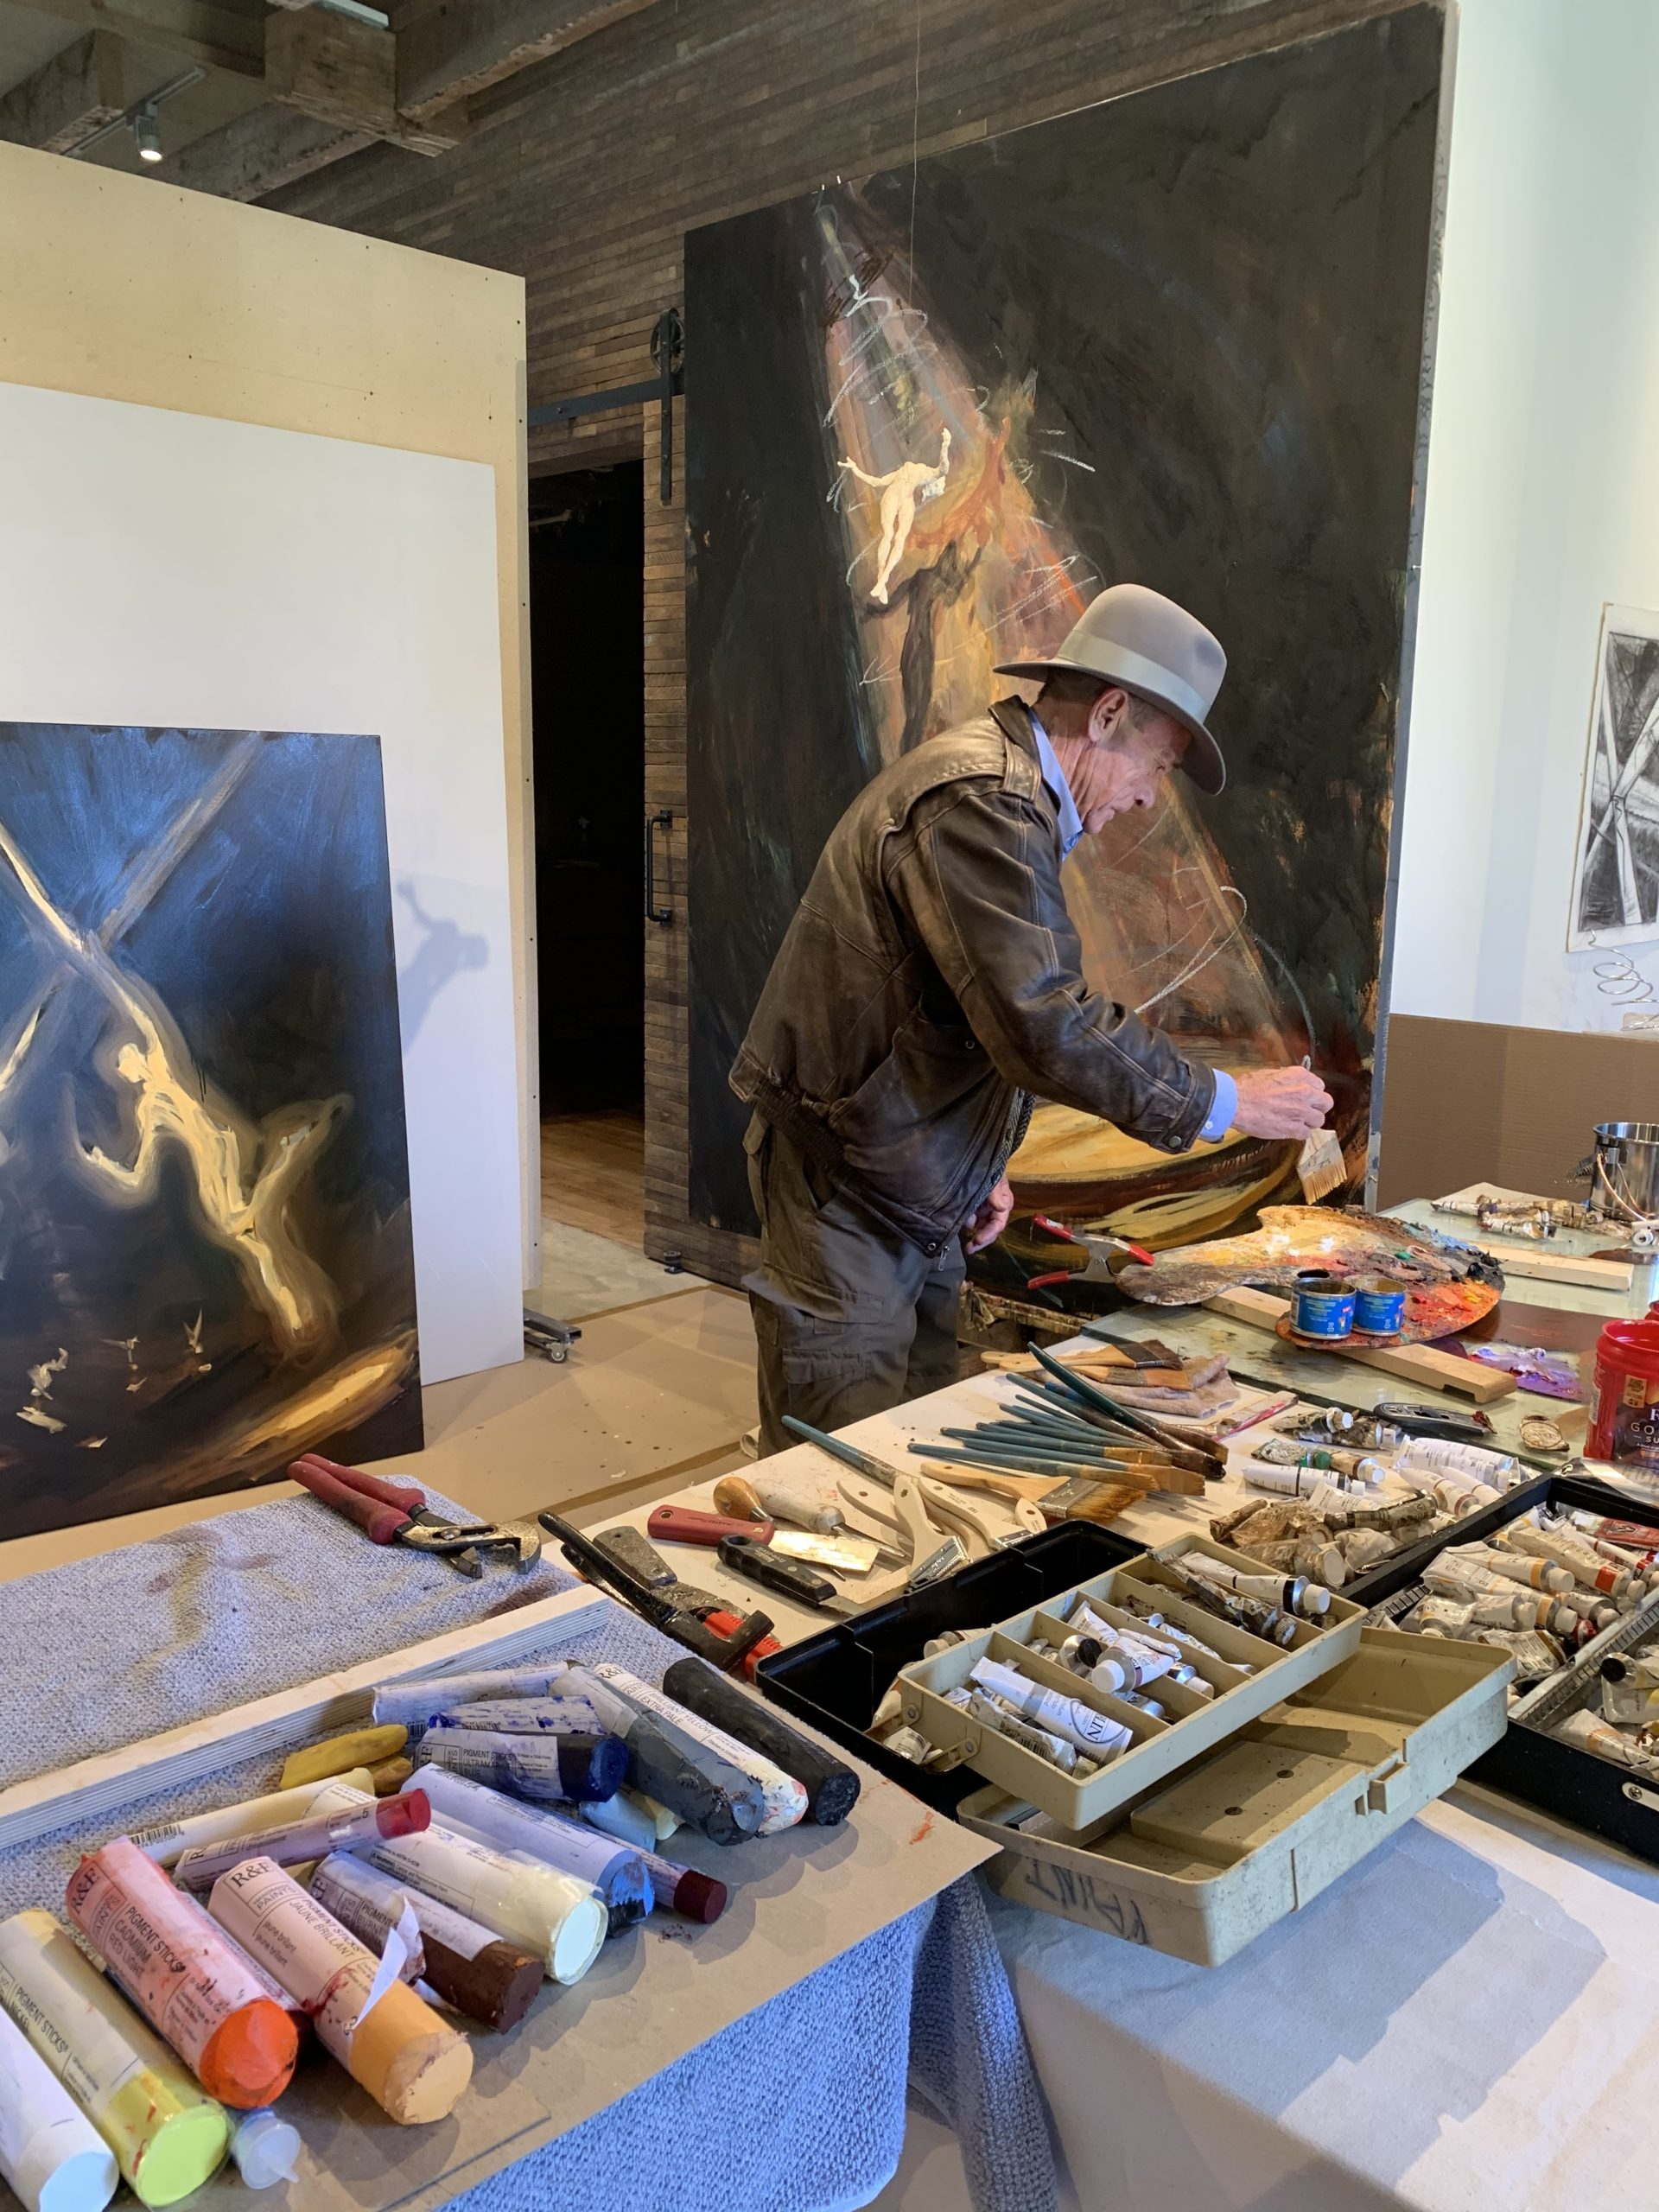 Jim Ginerich at work on a painting.